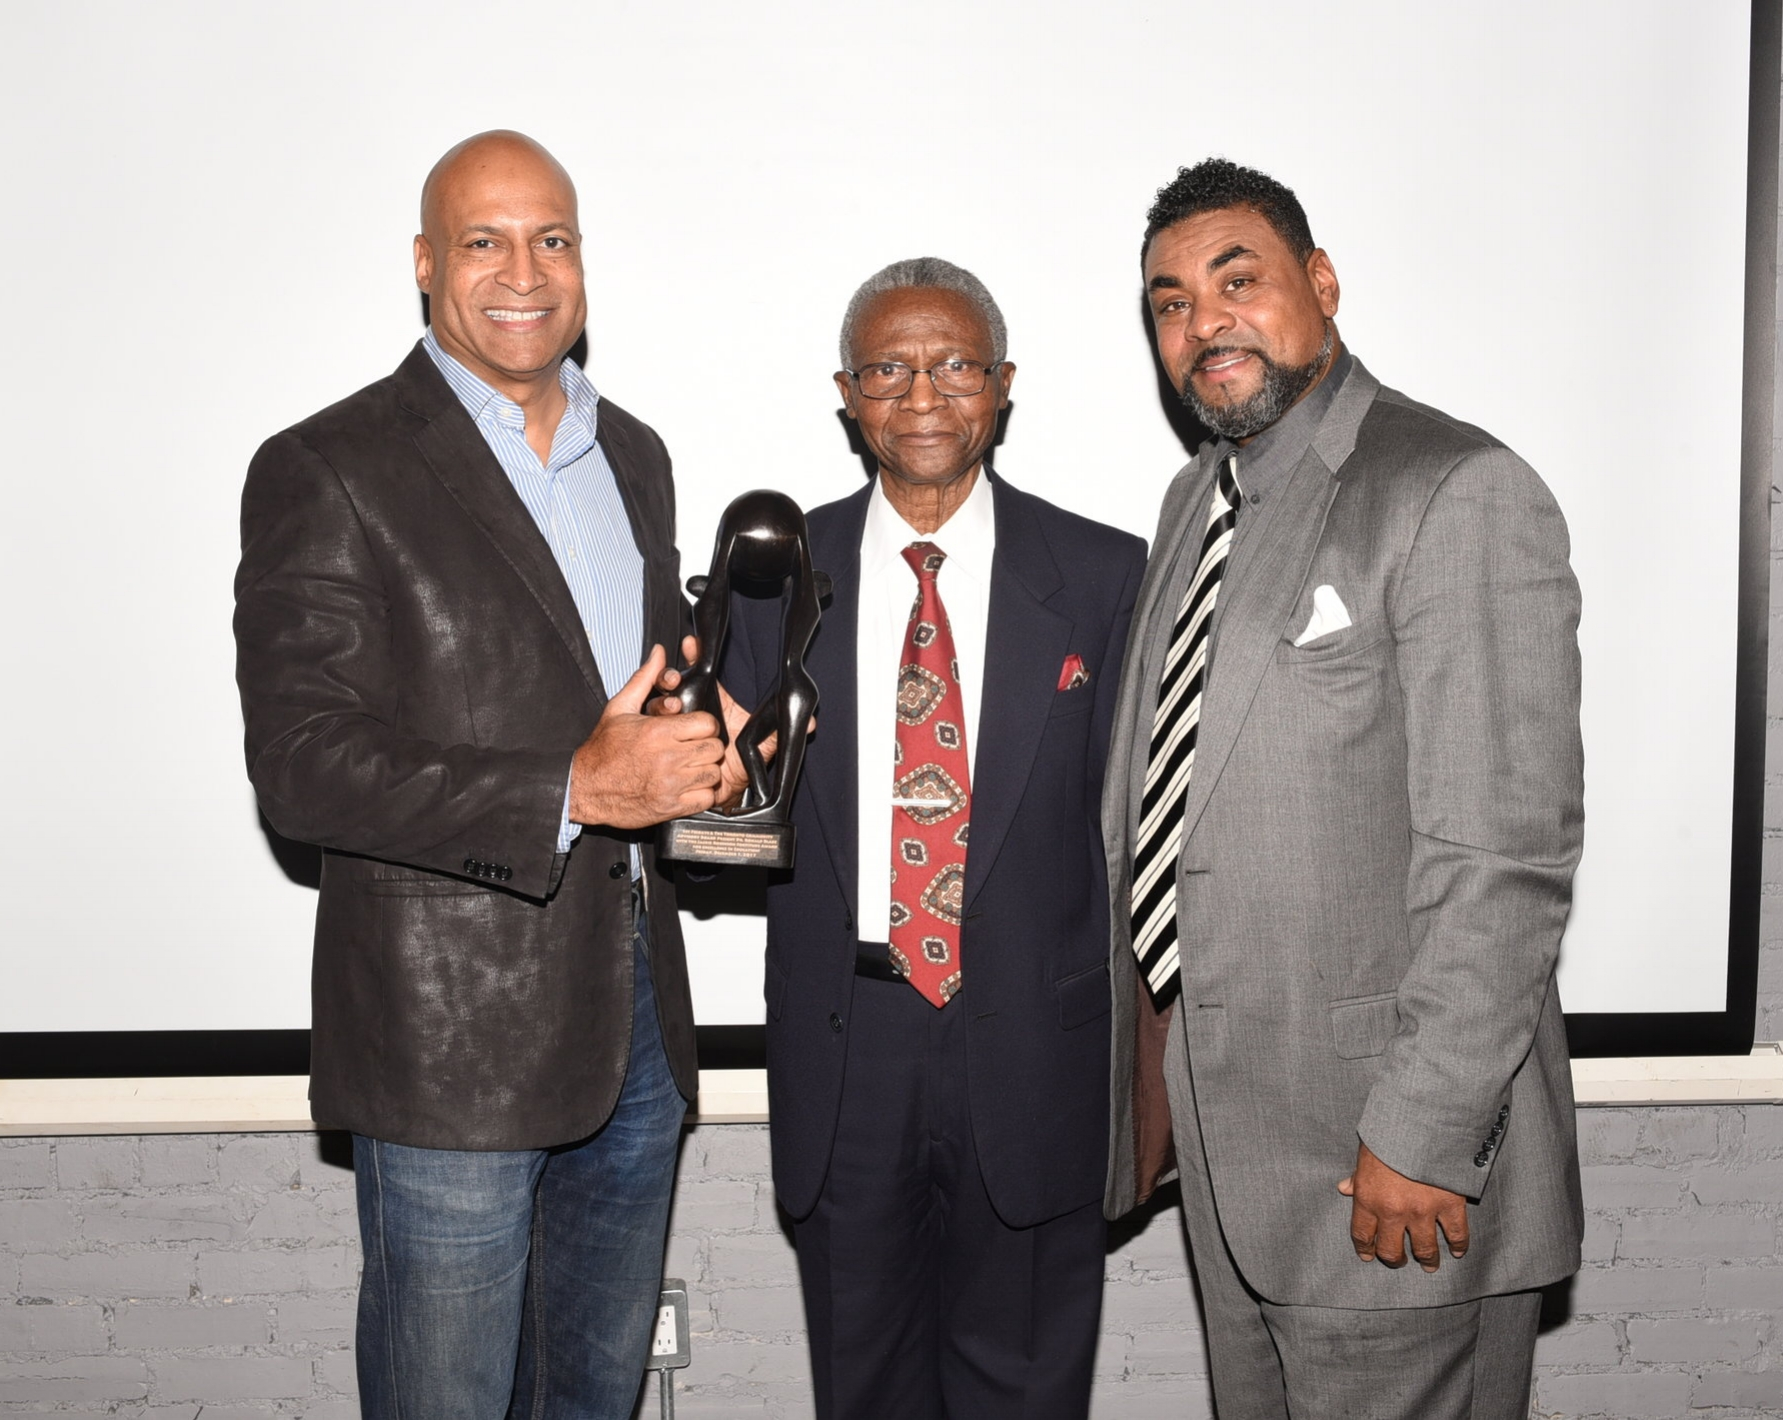 Warren Salmon (l) & Dewitt Lee (r) presented the Jackie Robinson Fortitude Award to Dr. Ronald Blake